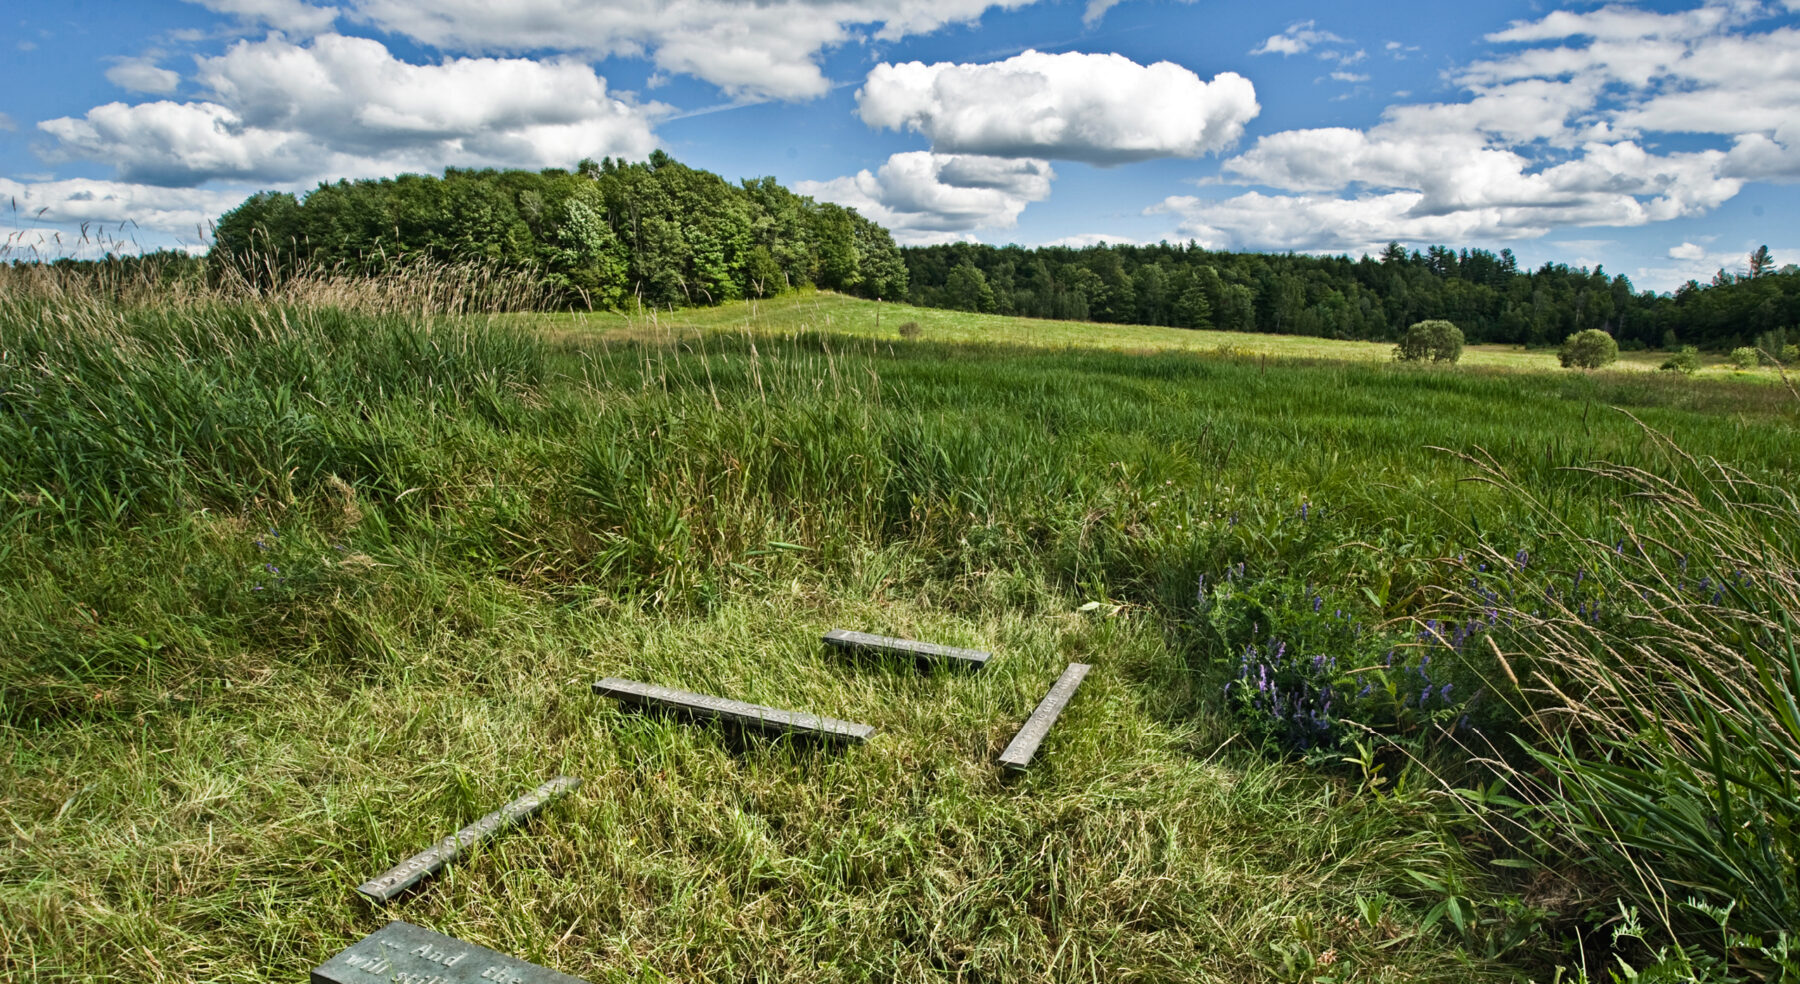 Wide-view of Cemetery Markers in field